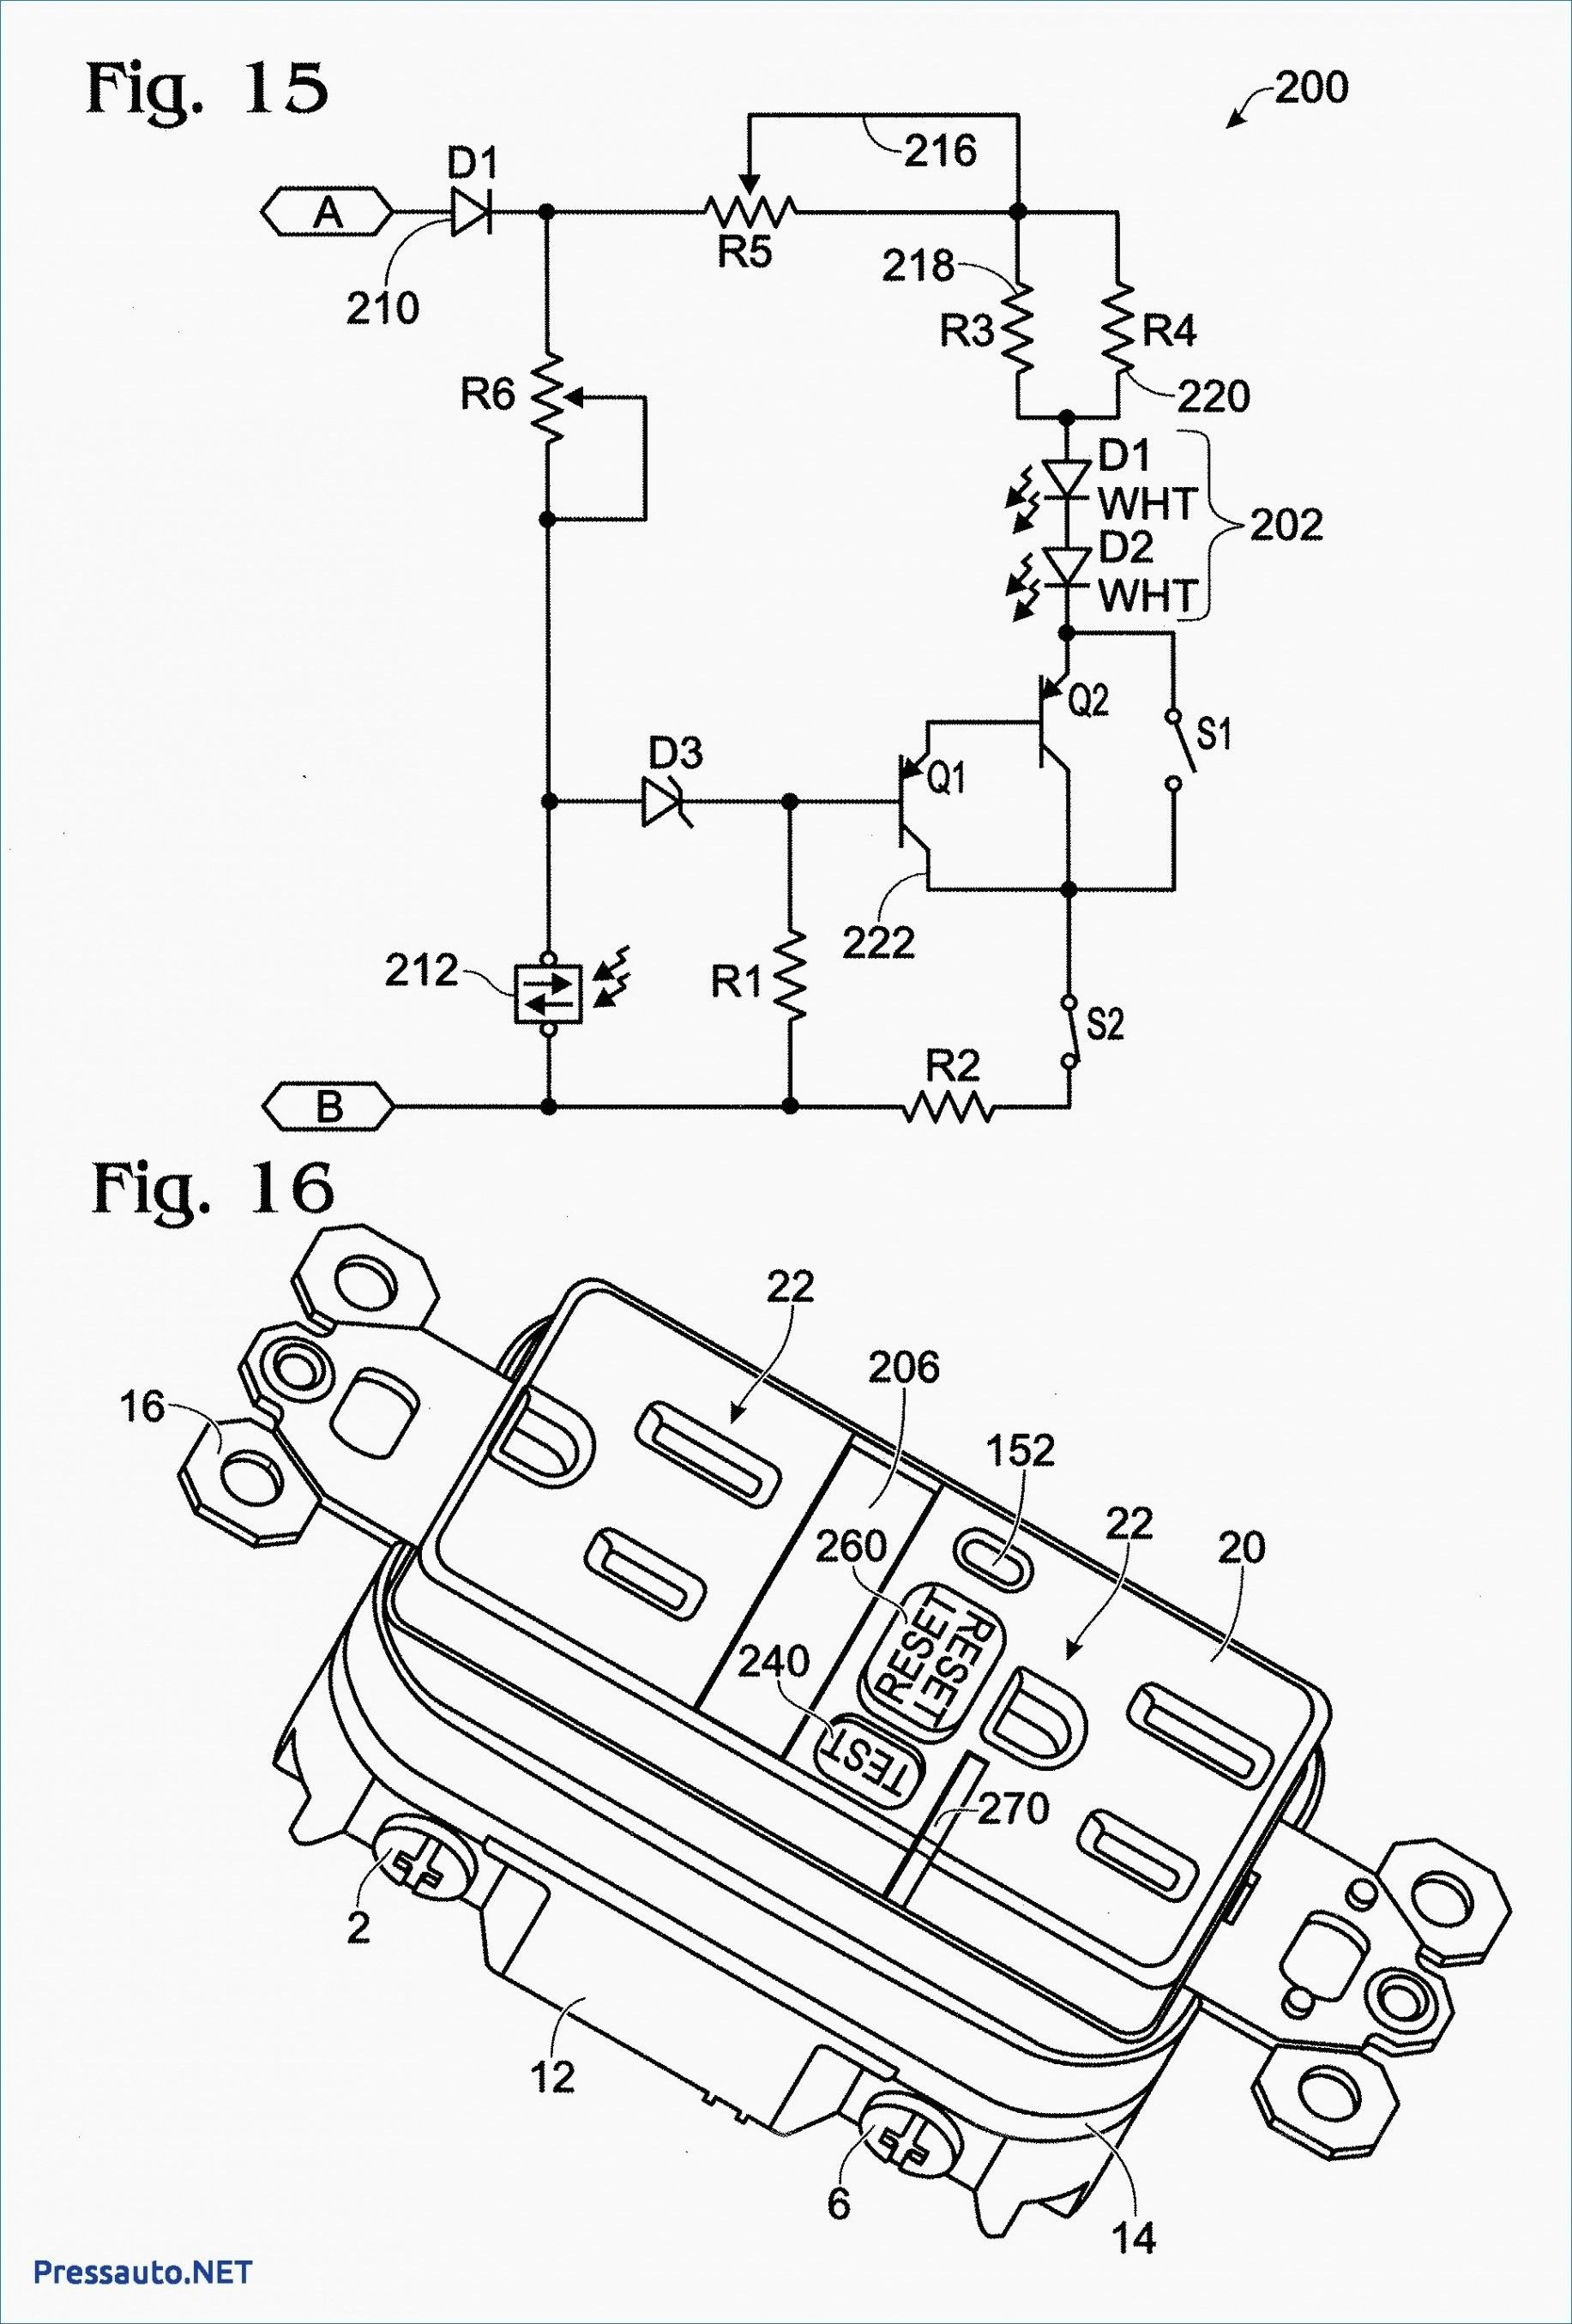 Unique Wiring Diagram 3 Pin Plug Australia (With images